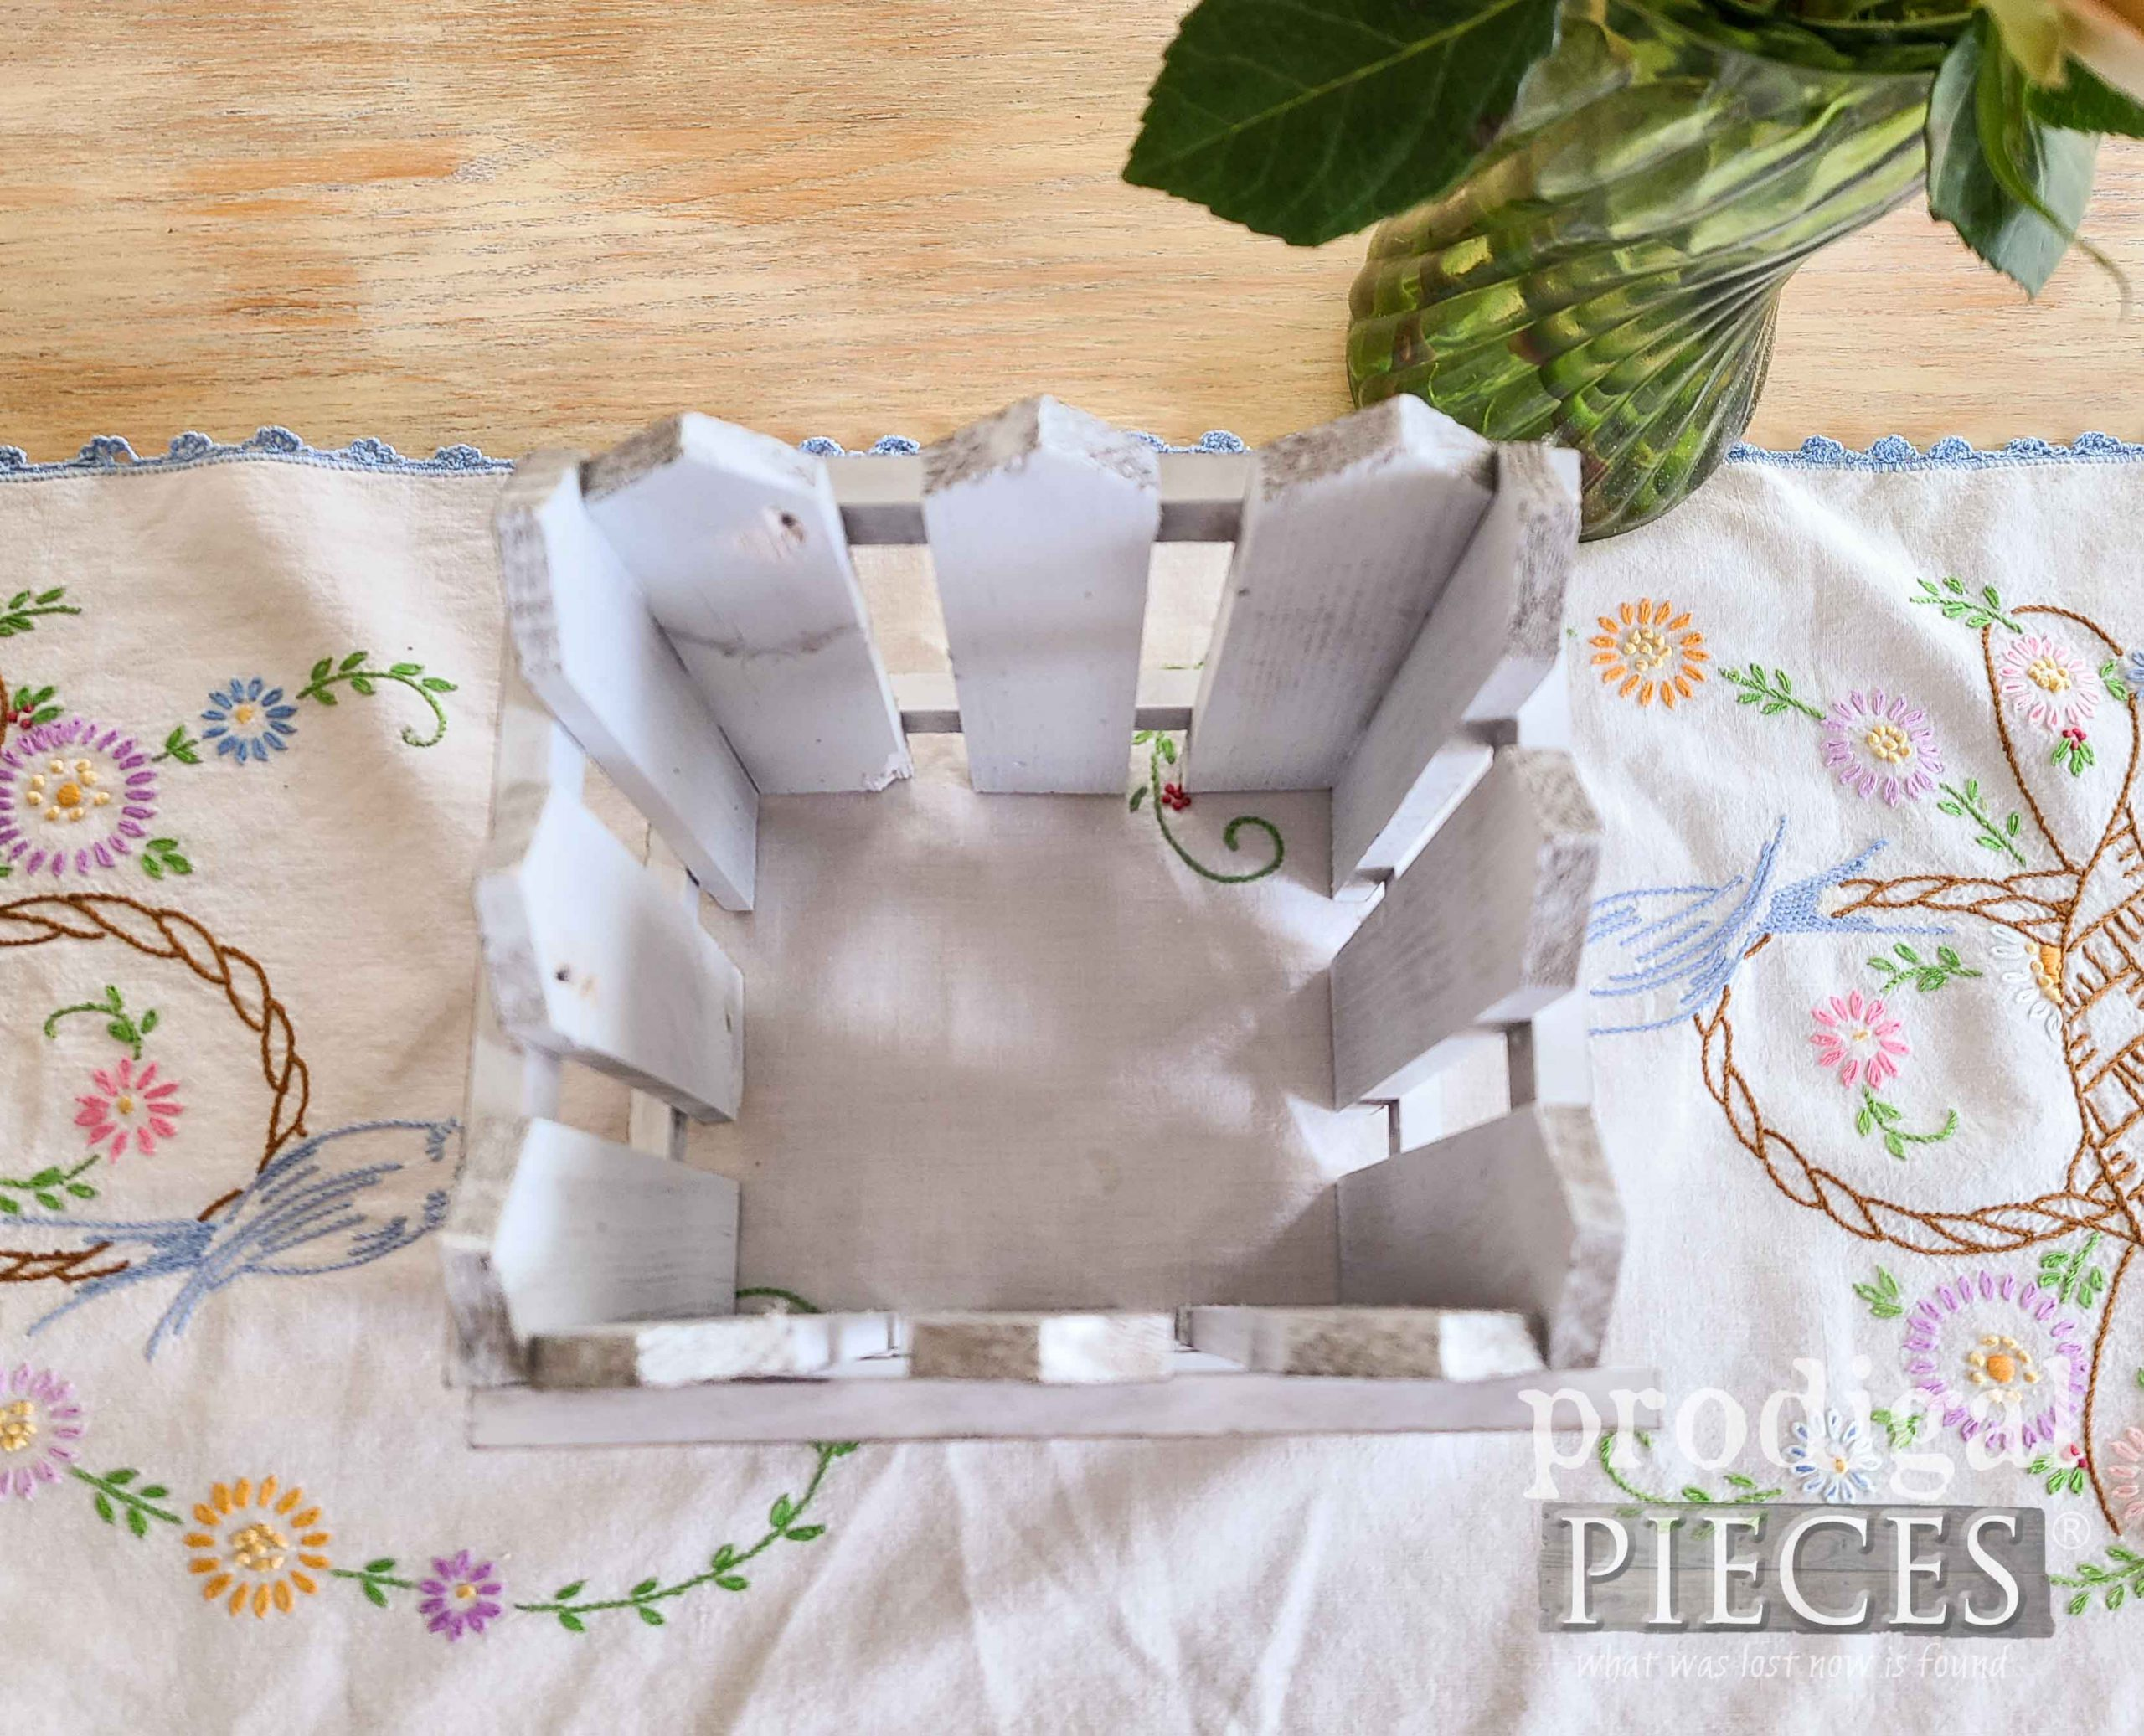 White Picket Vase Cover from Upcycled Vintage Shelf by Larissa of Prodigal Pieces | prodigalpieces.com #prodigalpieces #diy #vintage #home